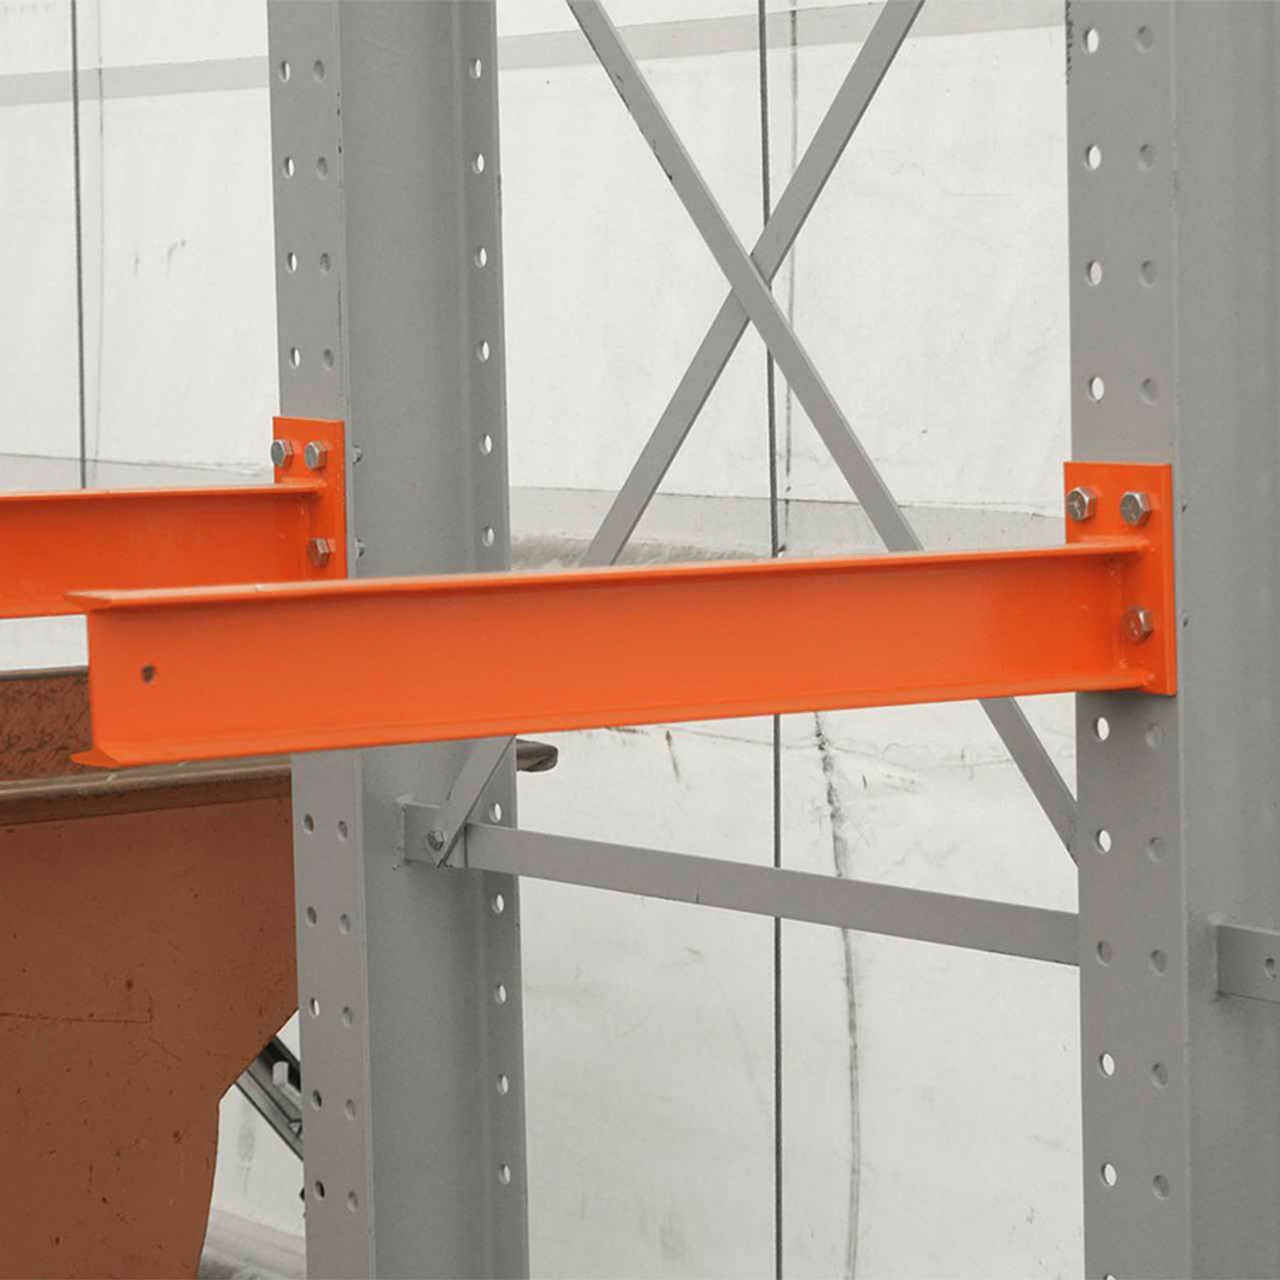 Cantilever rack arm -Side view